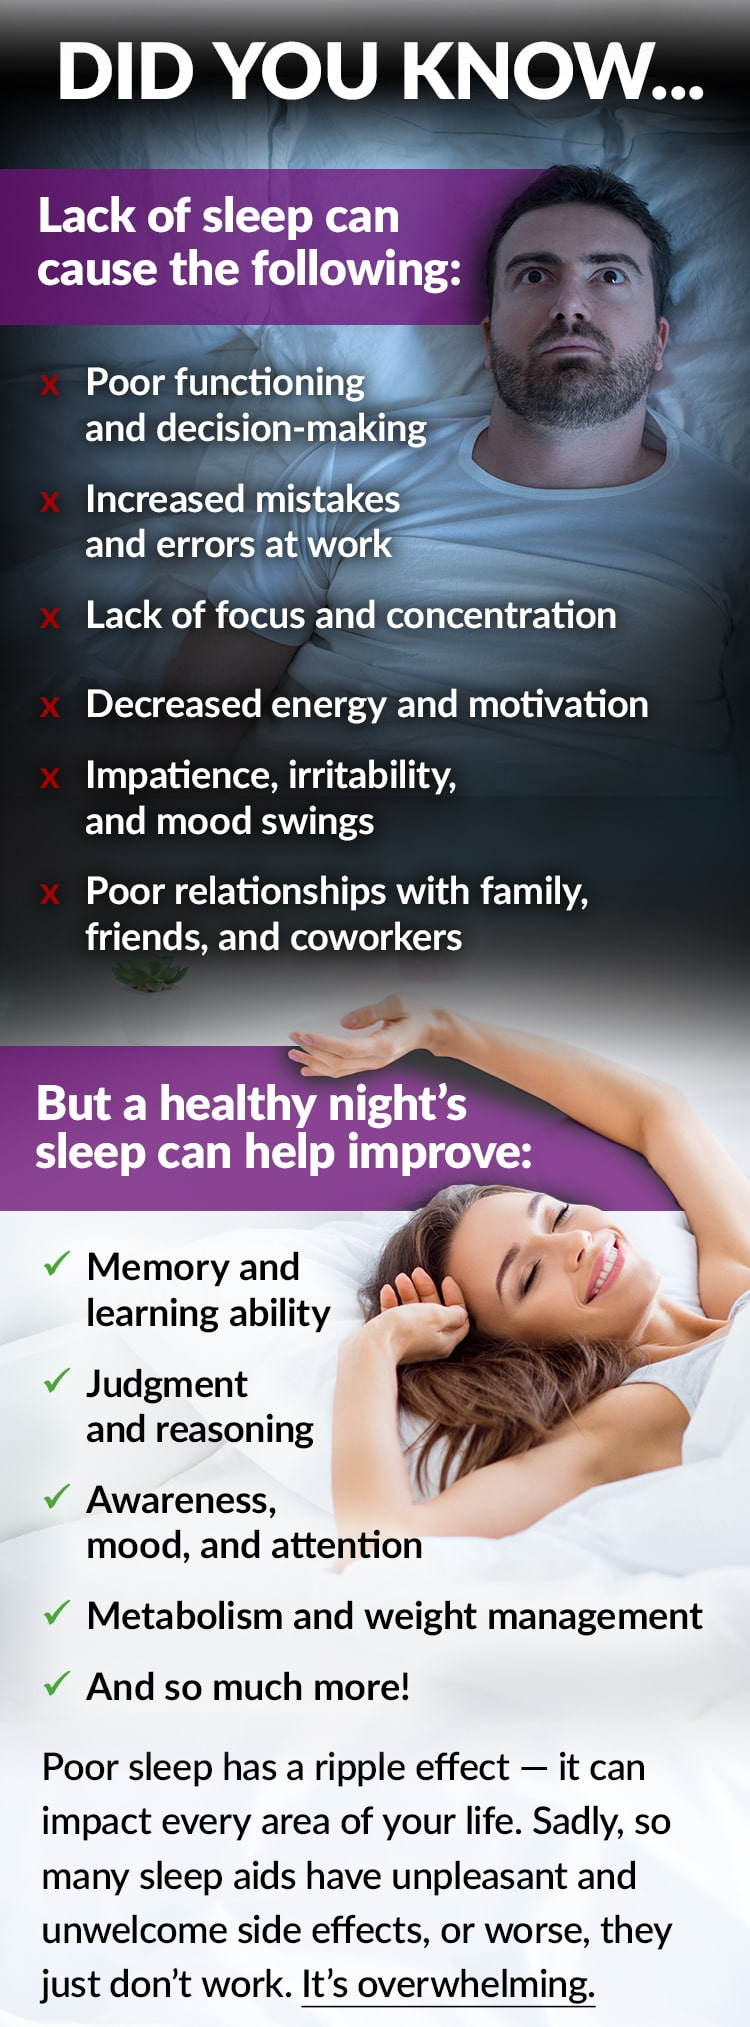 DID YOU KNOW... Lack of sleep can cause the following: Poor functioning and decision-making, Increased mistakes and errors at work, Lack of focus and concentration, Decreased energy and motivation, Impatience, irritability, and mood swings, Poor relationships with family, friends, and coworkers. But a healthy night's sleep can help improve: Memory and learning ability, Judgment and reasoning, Awareness, mood, and attention, Metabolism and weight management, And so much more! Poor sleep has a ripple effect – it can impact every area of your life. Sadly, so many sleep aids have unpleasant and unwelcome side effects, or worse, they just don't work. It's overwhelming.